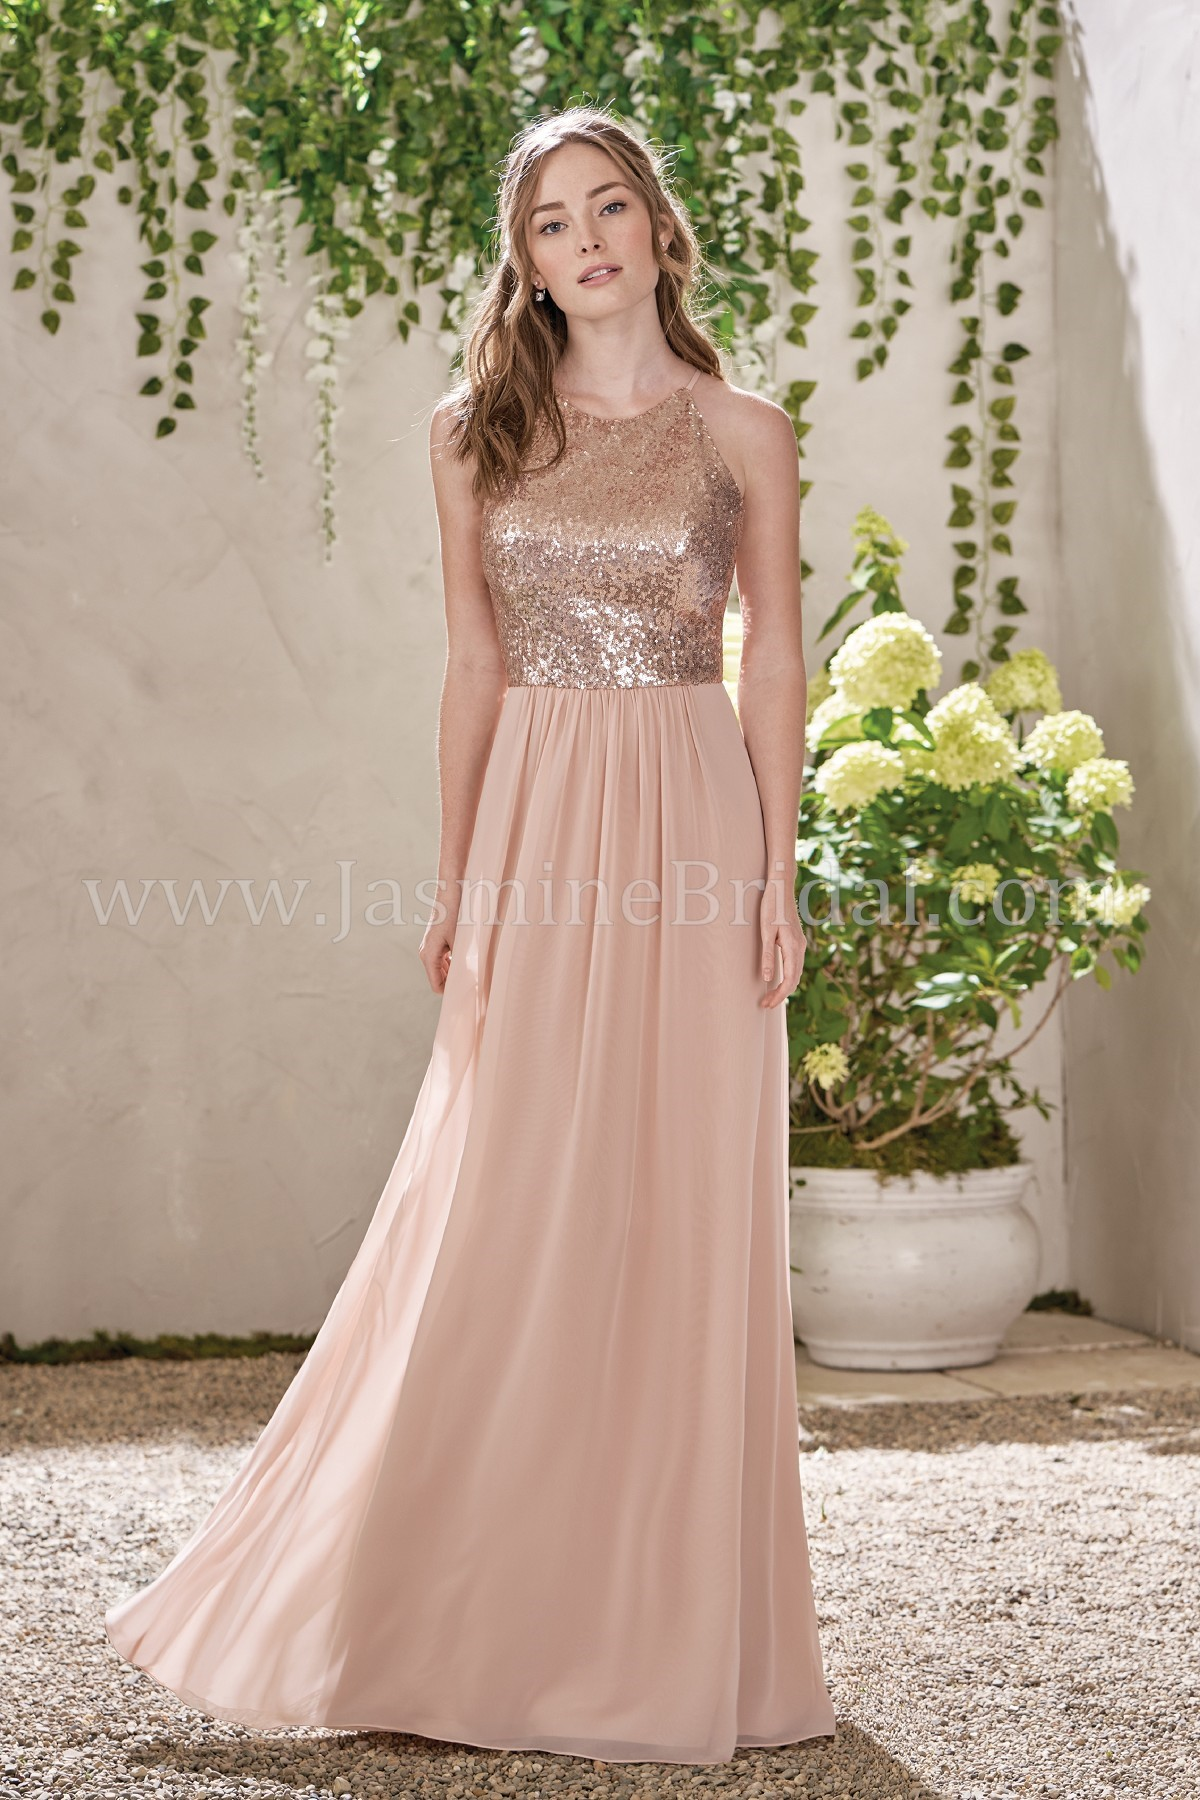 B193007 long jewel neckline sequin poly chiffon bridesmaid dress ombrellifo Choice Image